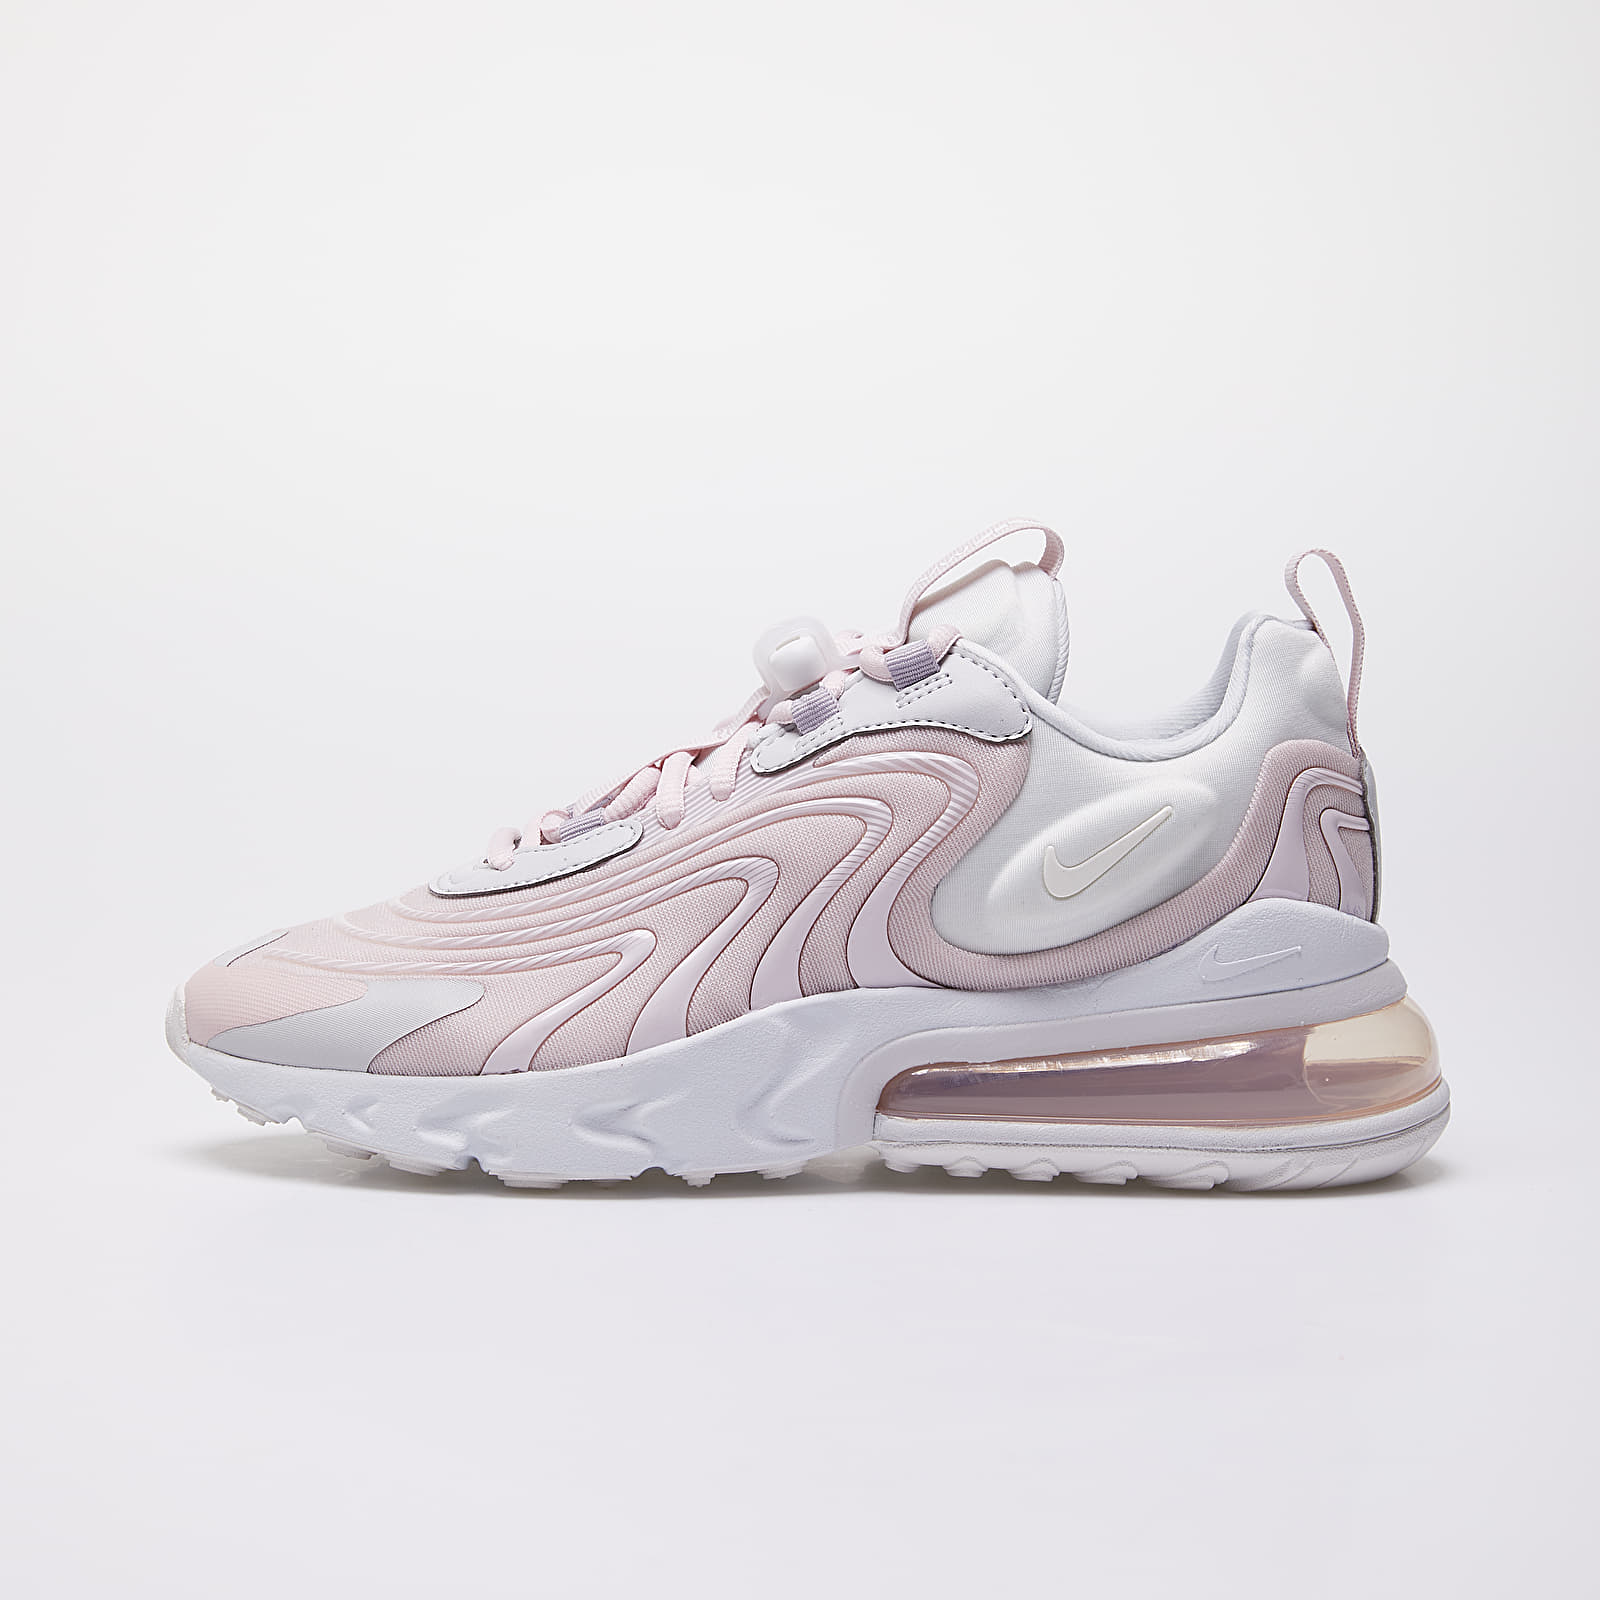 Nike W Air Max 270 React Eng Photon Dust Summit White Barely Rose | Footshop